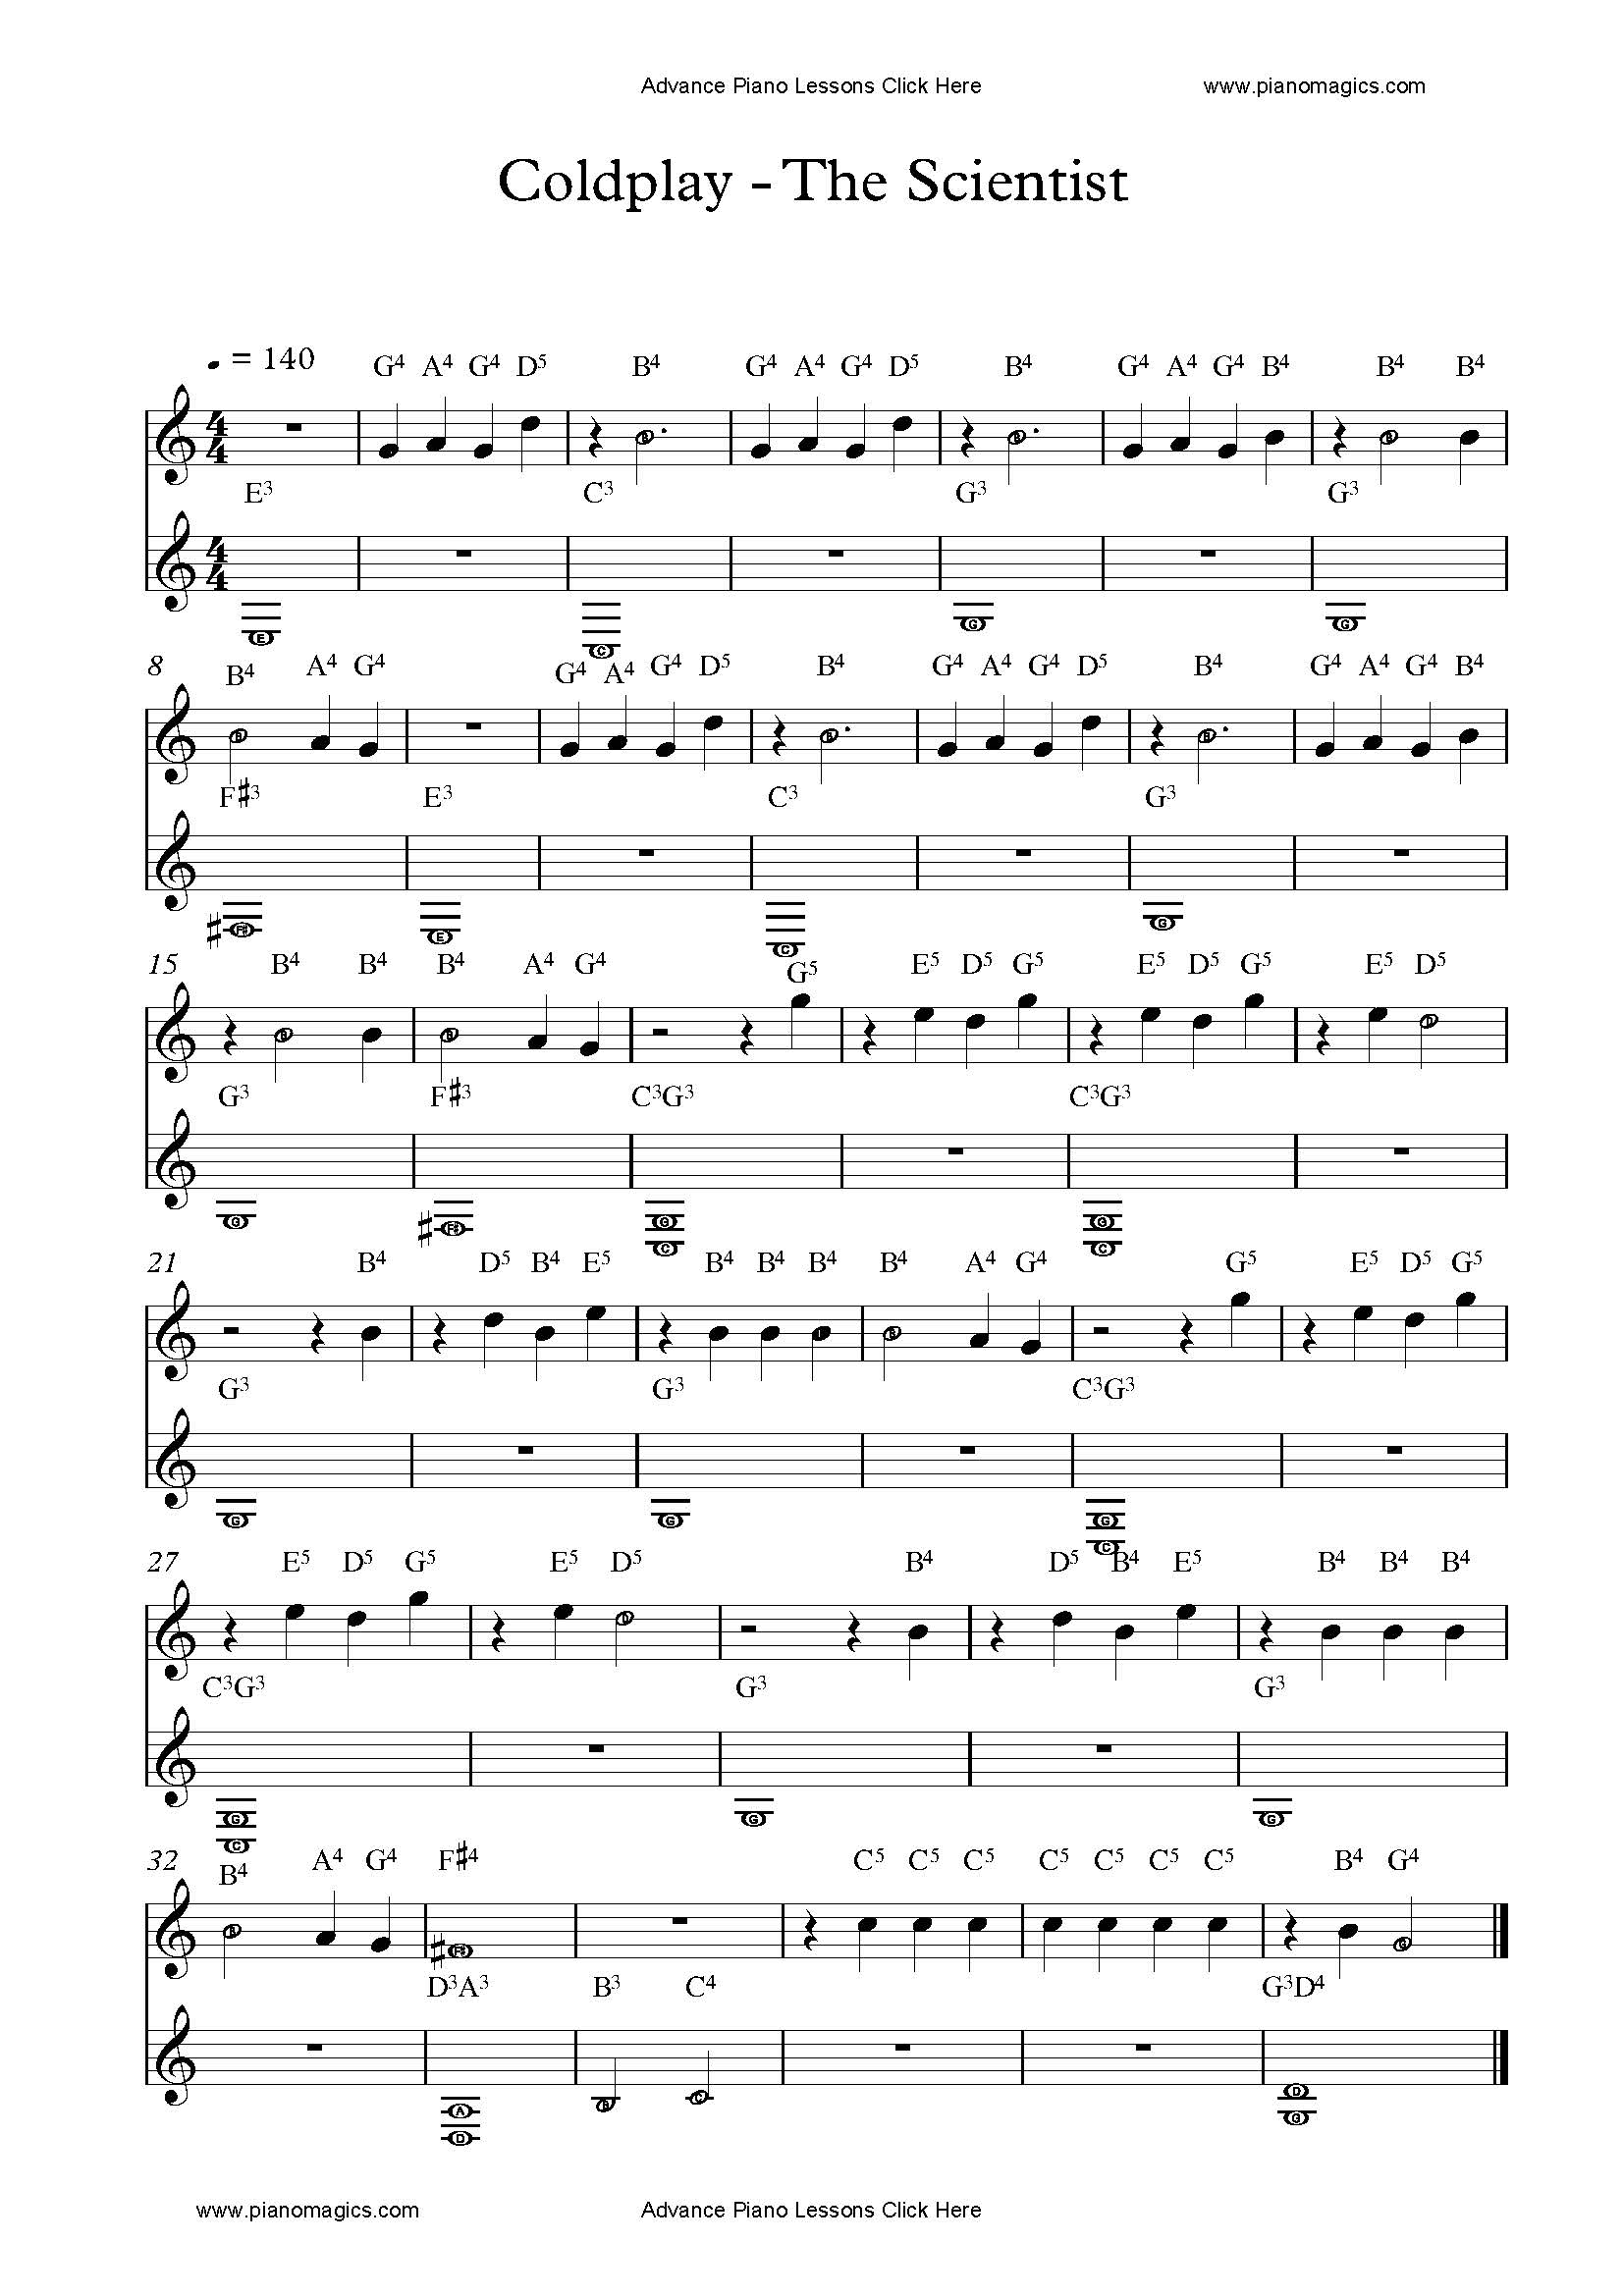 The Scientist Piano Sheet